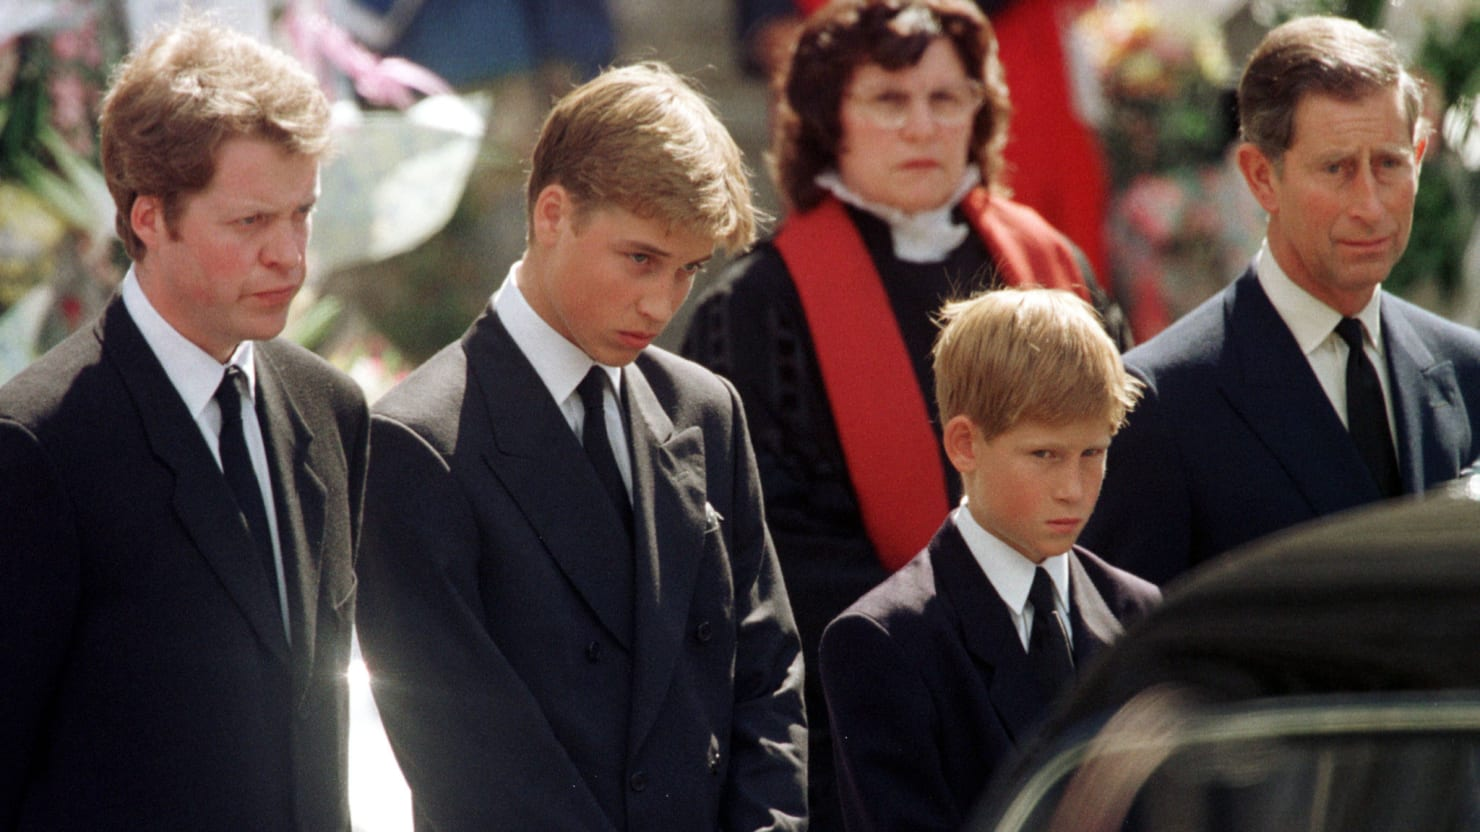 Prince Harry Slams Charles for Making Him Walk Behind Diana's Coffin